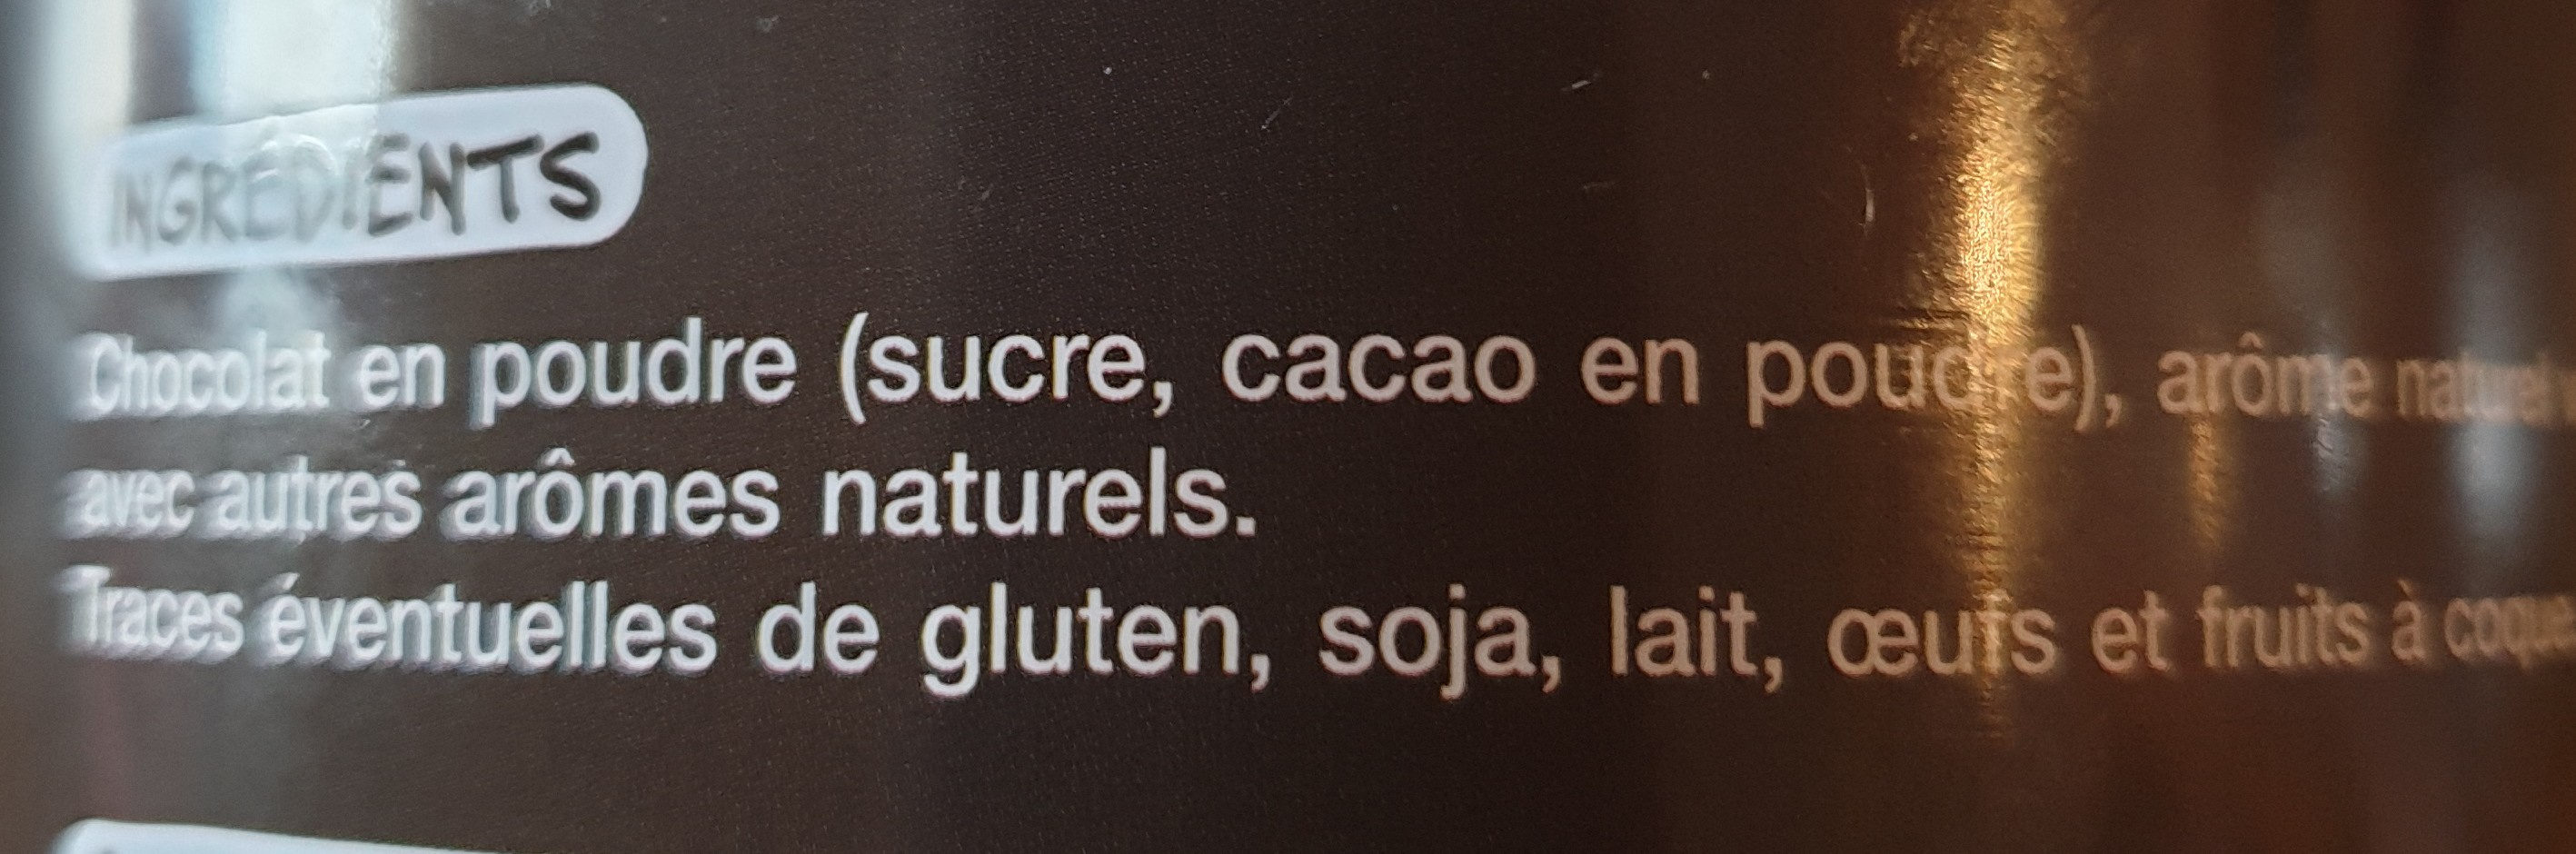 chocolat gourmand - Ingredients